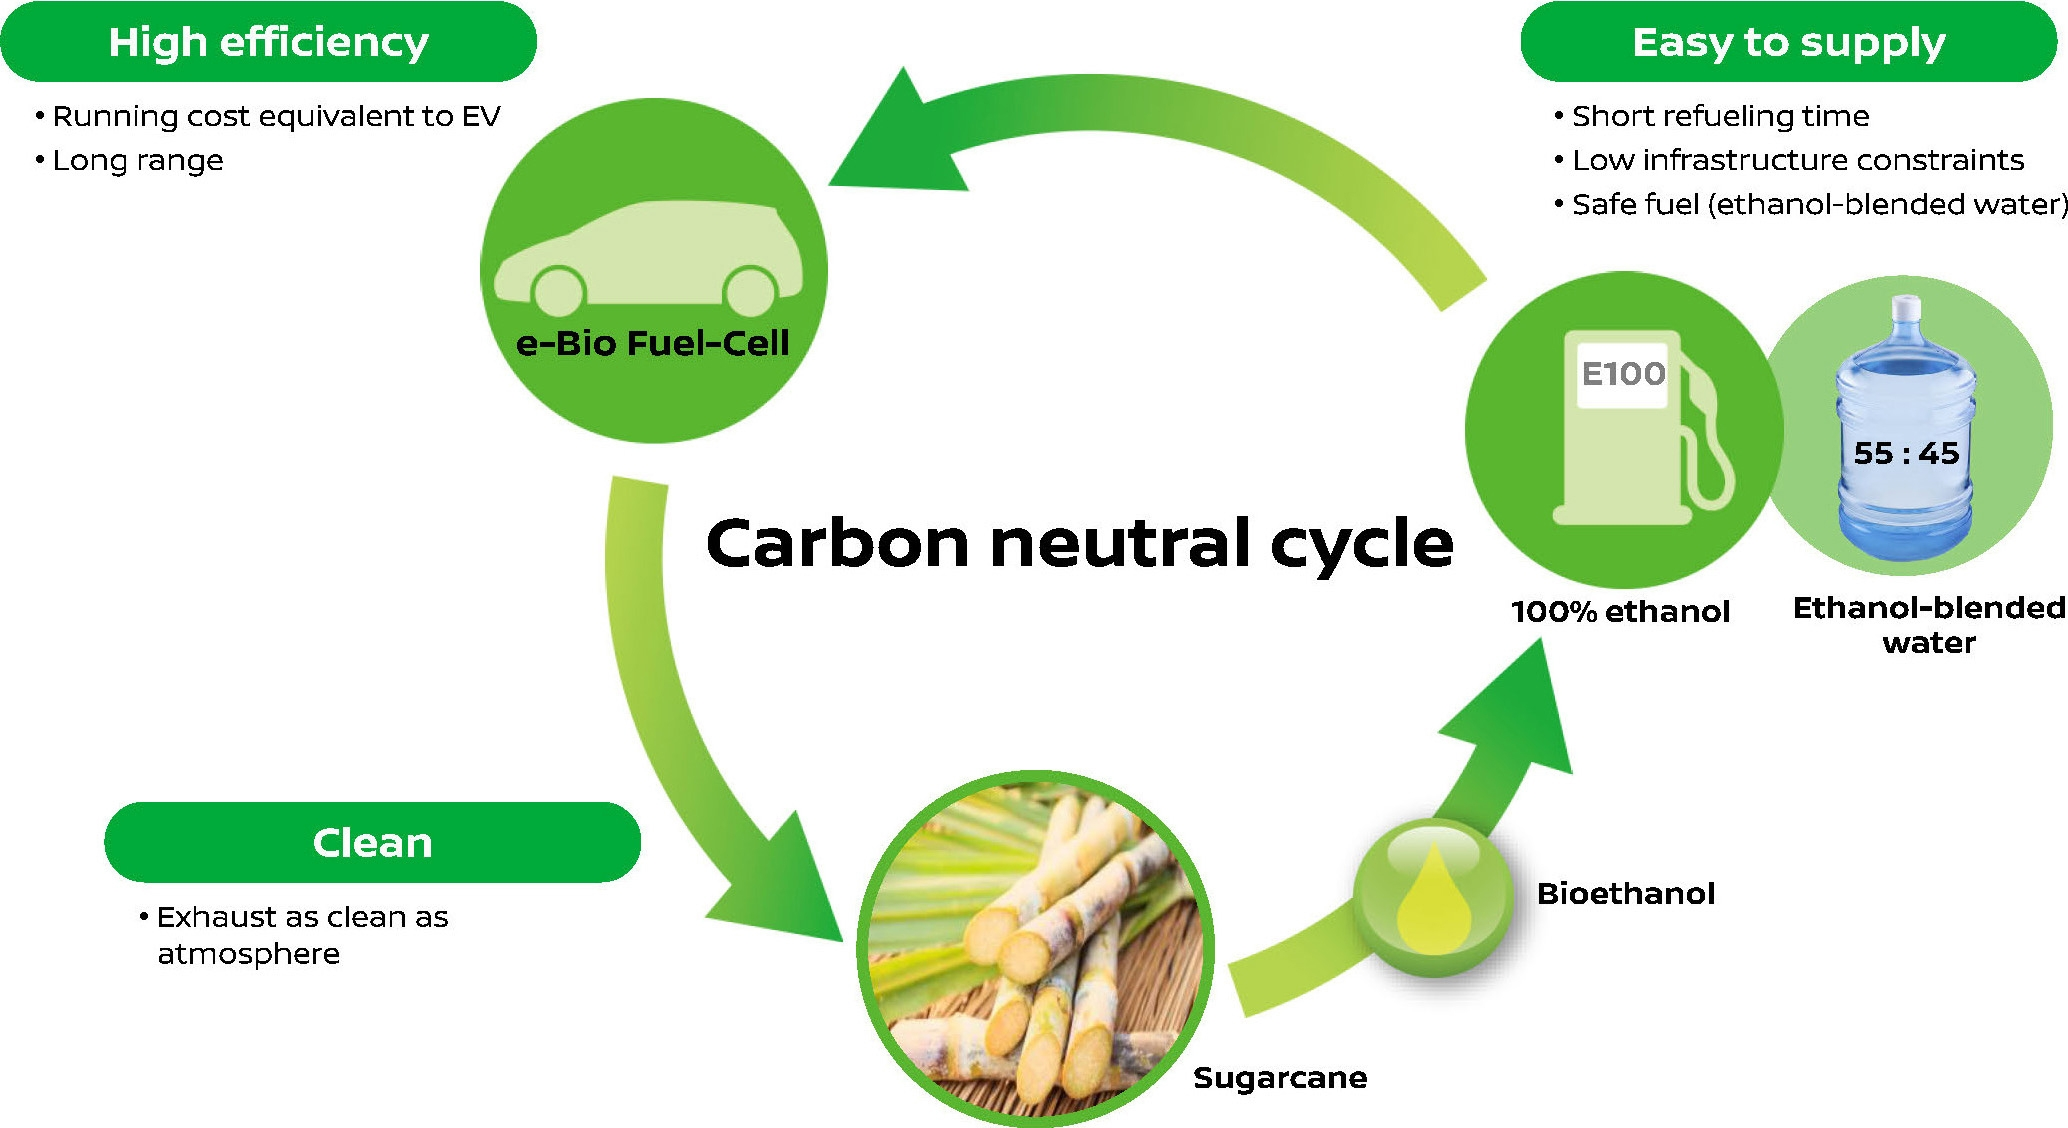 Why ethanol is not a suitable fuel for automobiles